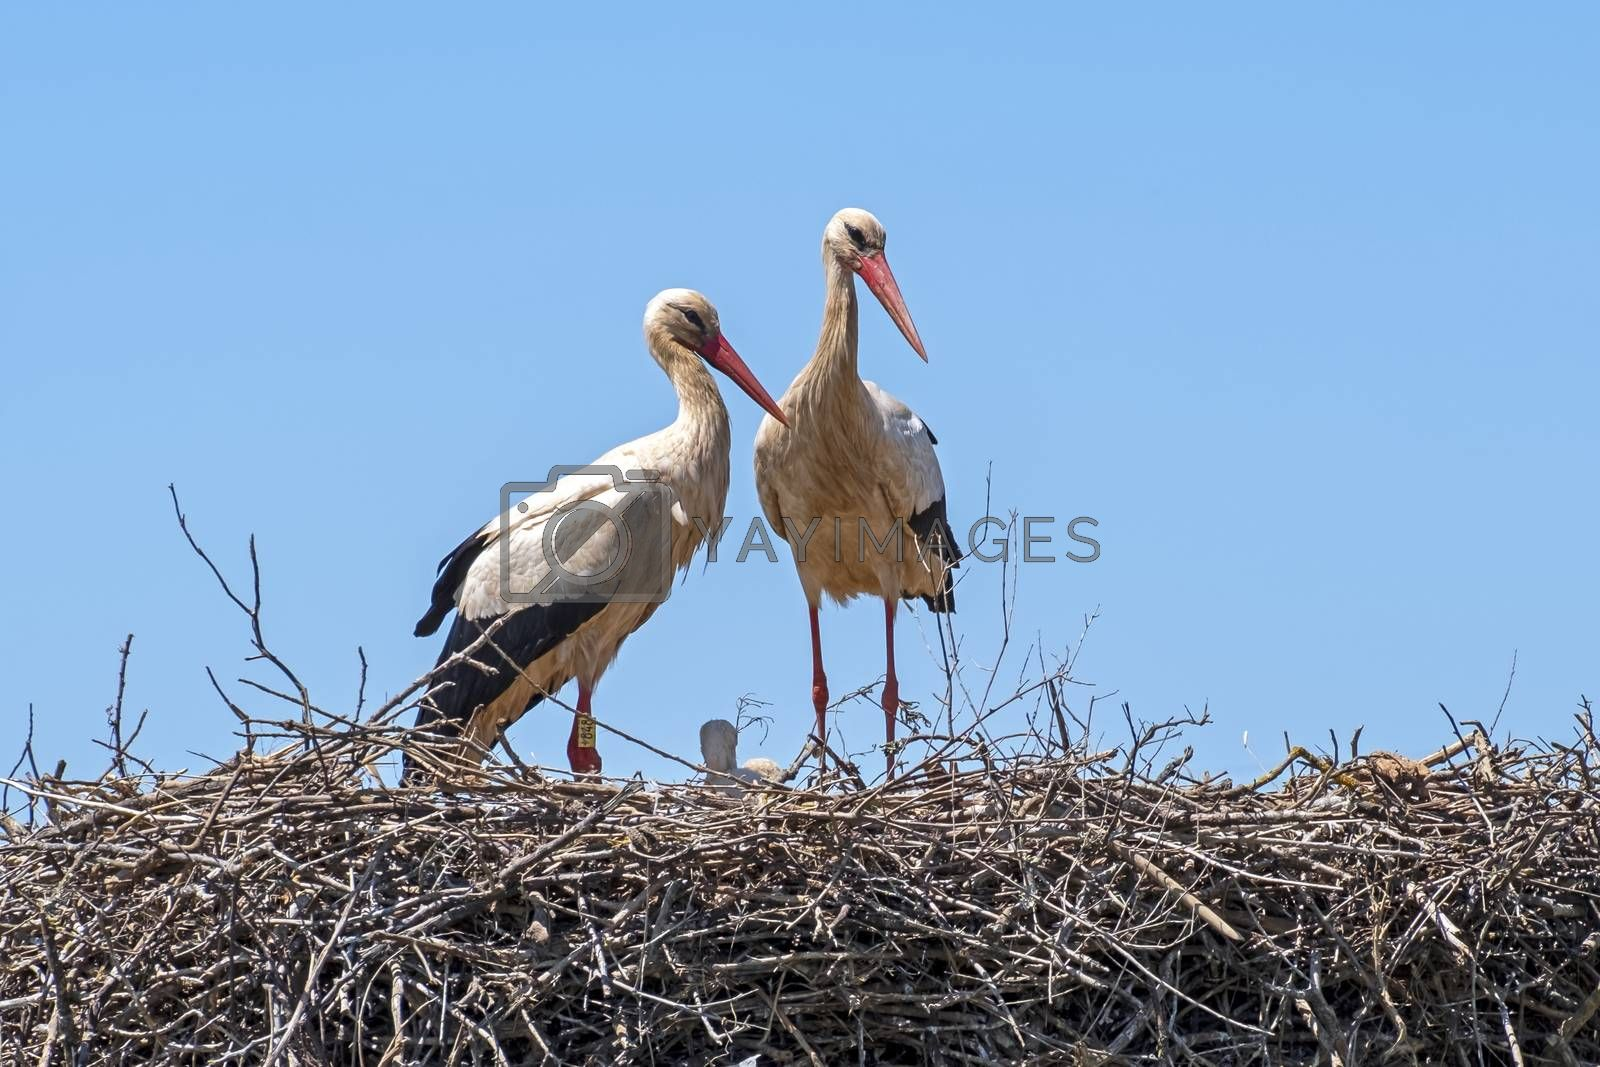 Storks with their babies on the nest in Portugal